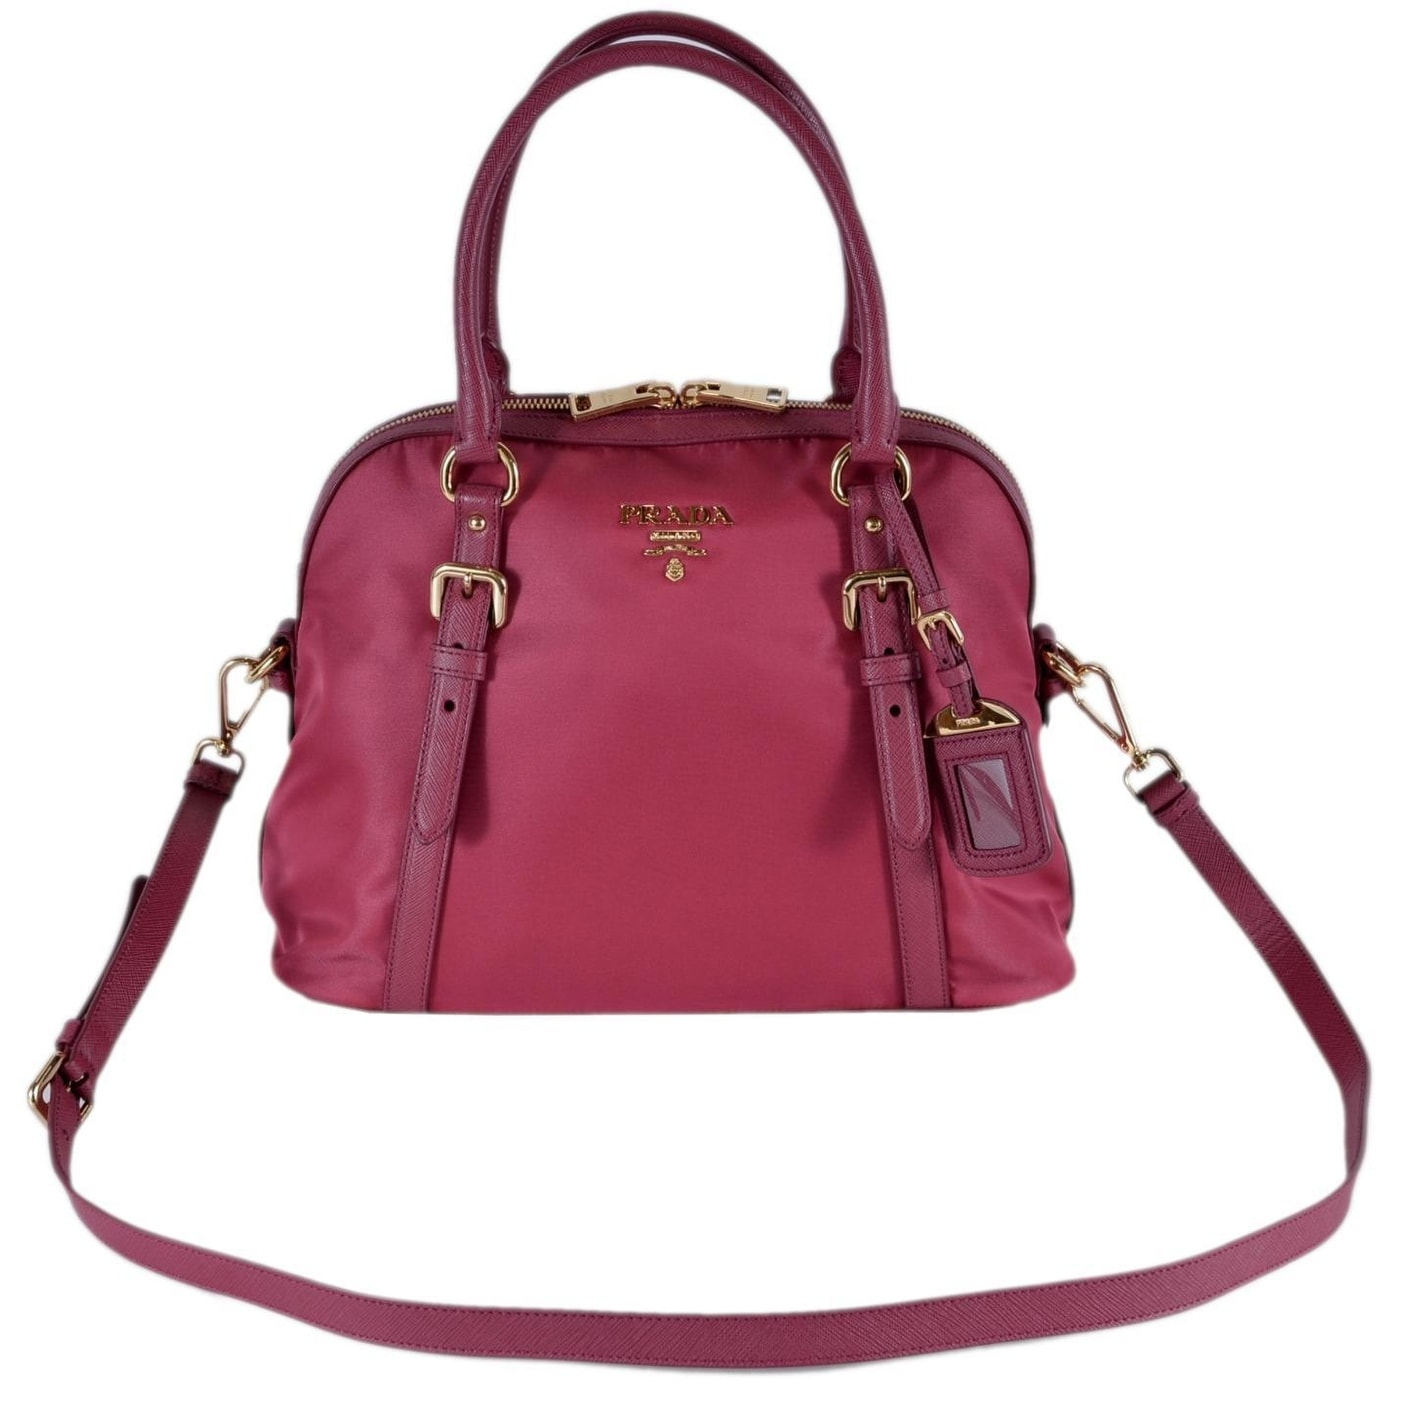 bced508b8f4f Shop Prada 1BB013 Tessuto Ibisco Pink Nylon Bauletto Satchel Purse W Strap  - On Sale - Free Shipping Today - Overstock - 26042646